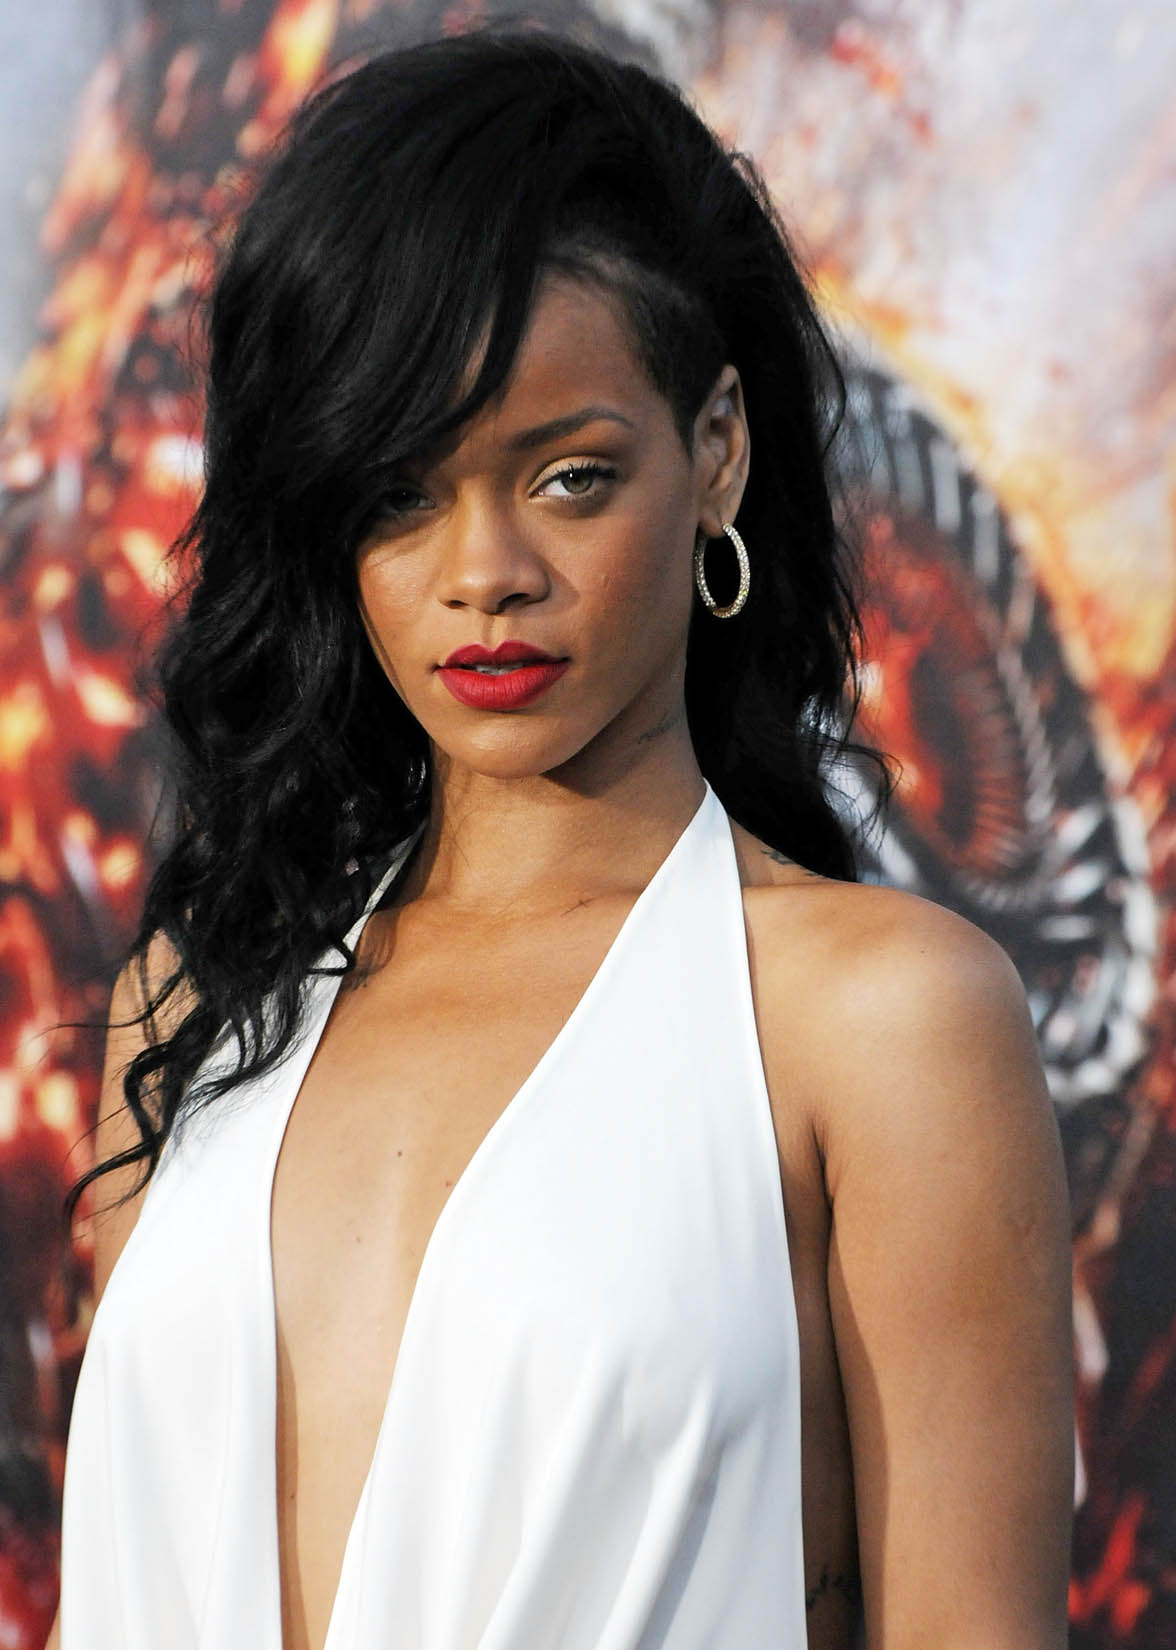 Rihanna Goes Nude for GQ Cover | Complex